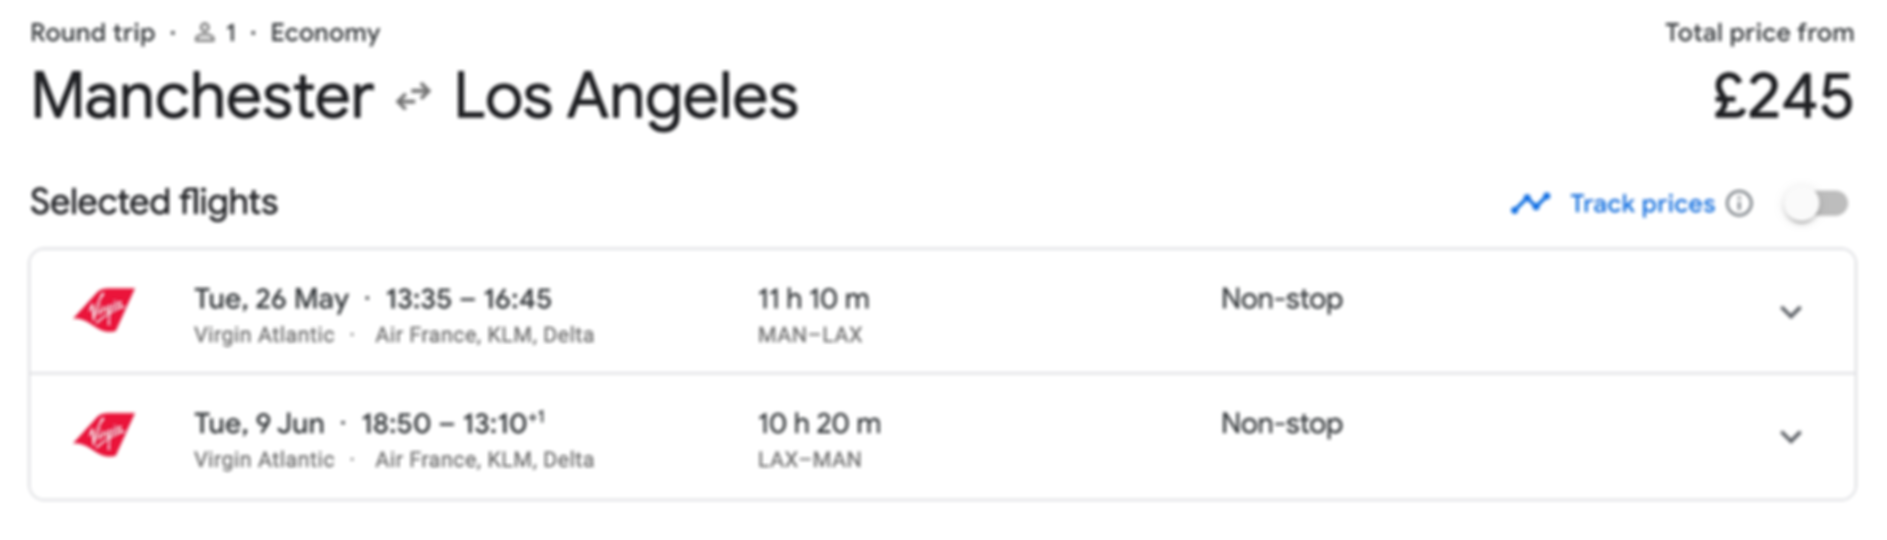 Los Angeles from Manchester, just £245 RTN  (Direct)